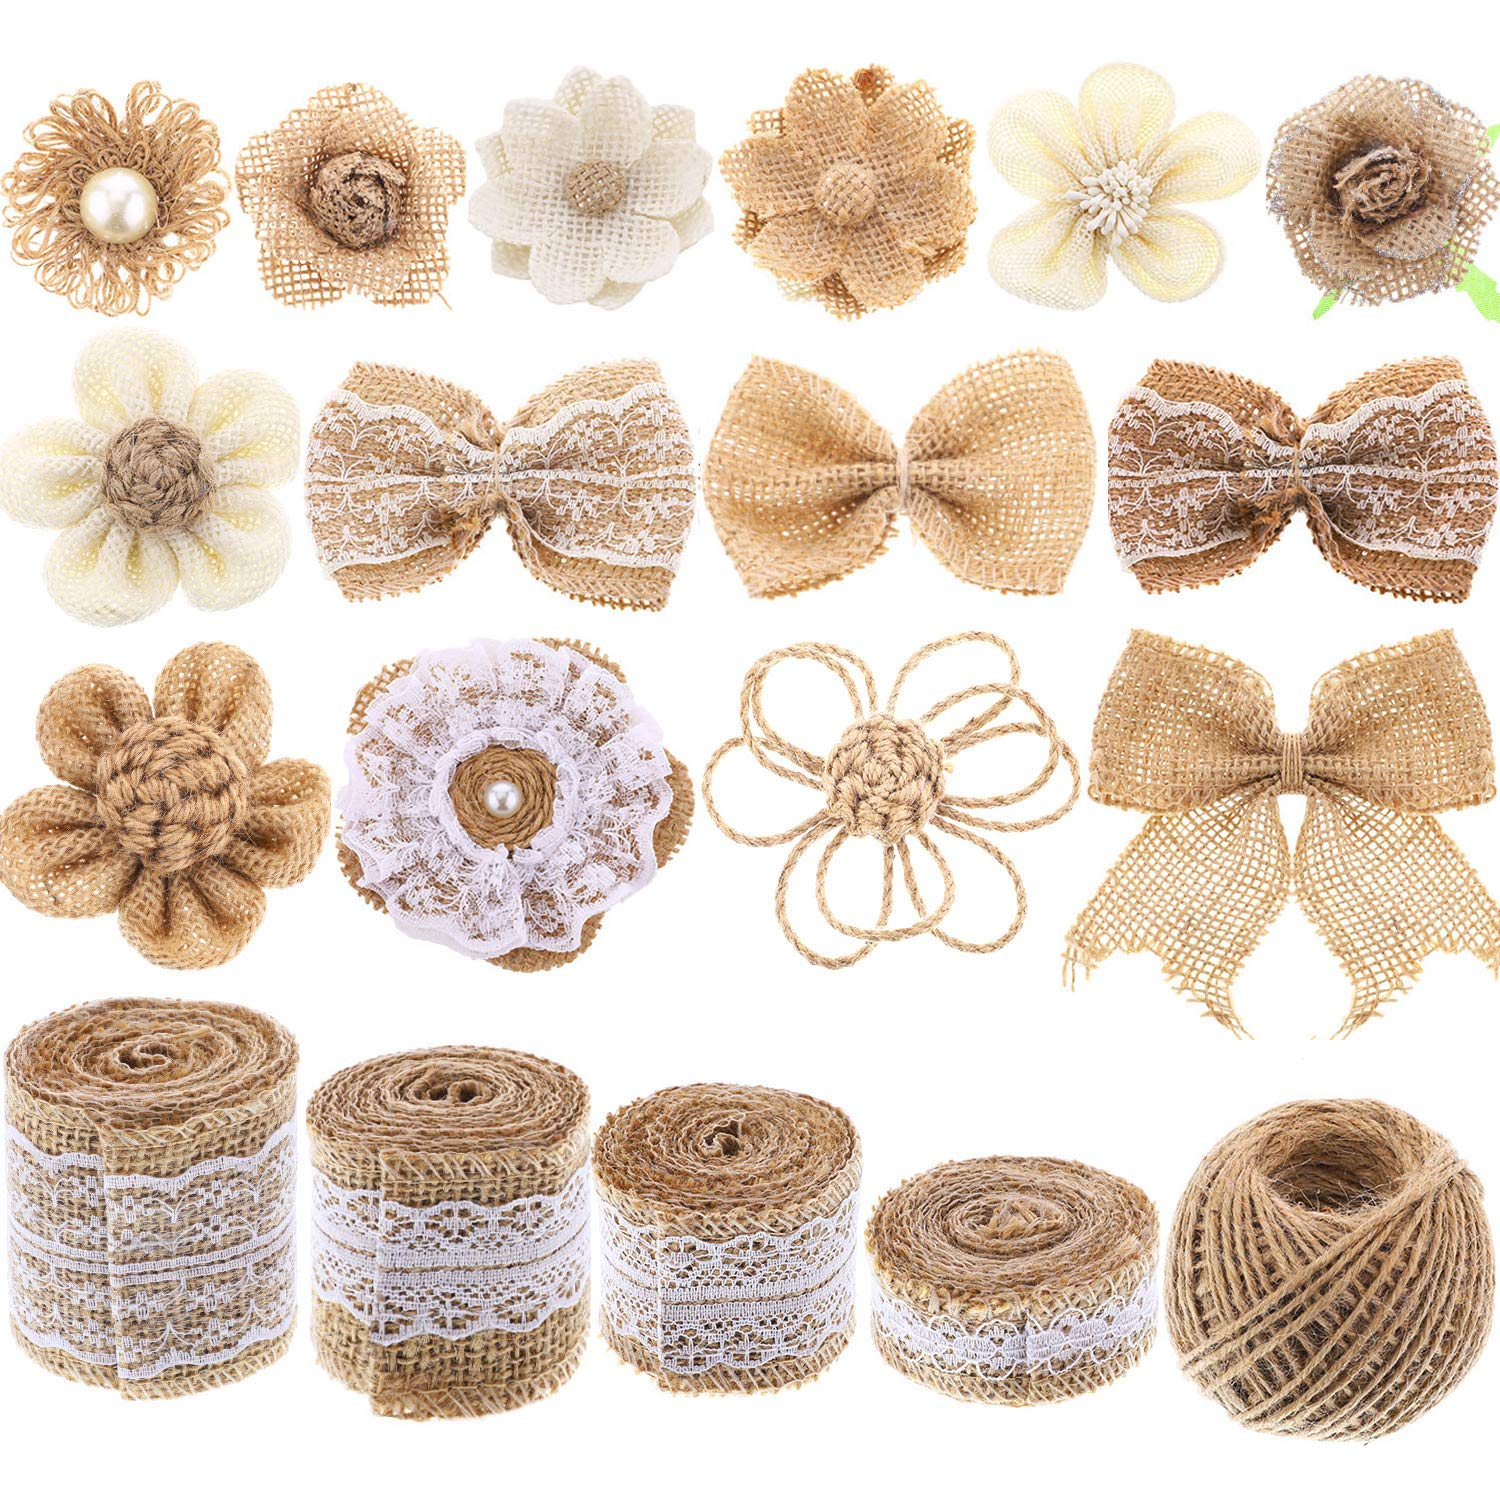 Yaomiao Natural Burlap Flowers Set, Include Lace Burlap Ribbon Roll, Handmade Rustic Burlap Flowers and Twine Ribbon for Wedding Home Embellishment by Yaomiao (Image #1)